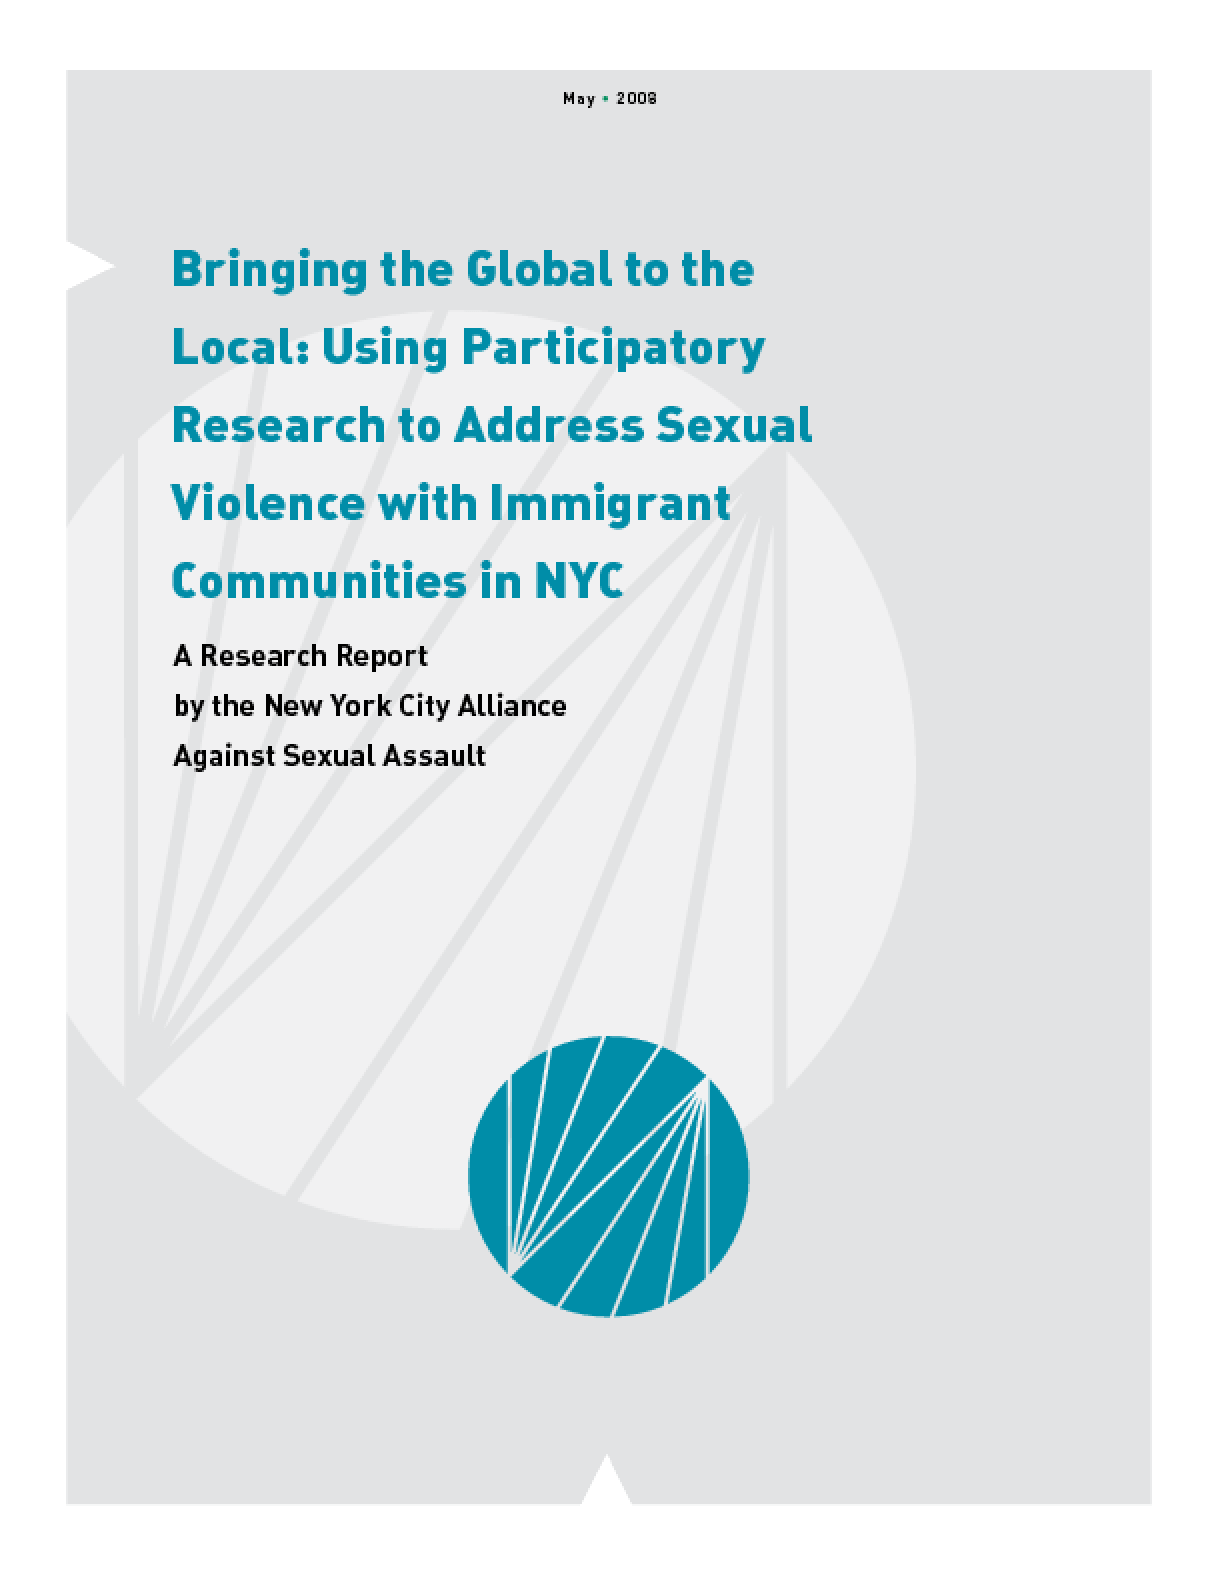 Bringing the Global to the Local: Using Participatory Research to Address Sexual Violence with Immigrant Communities in NYC